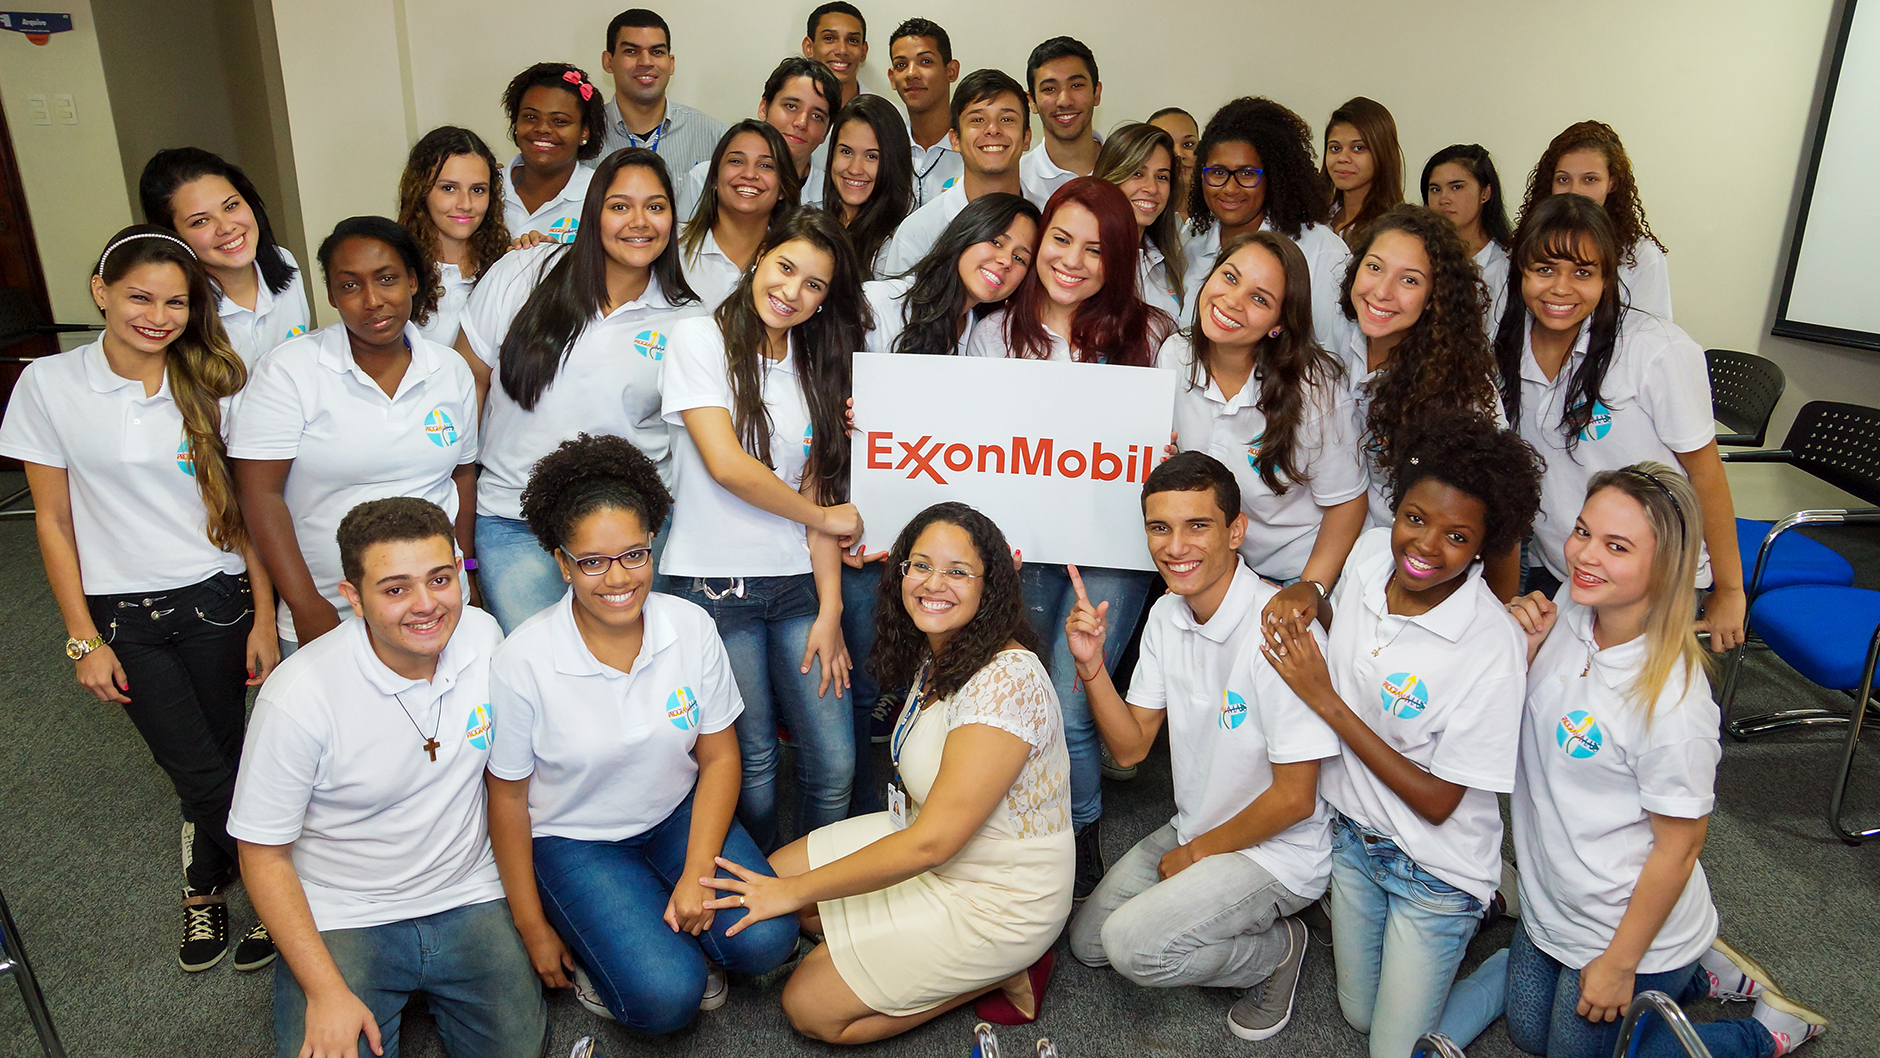 Participants in the ExxonMobil Mais Program.